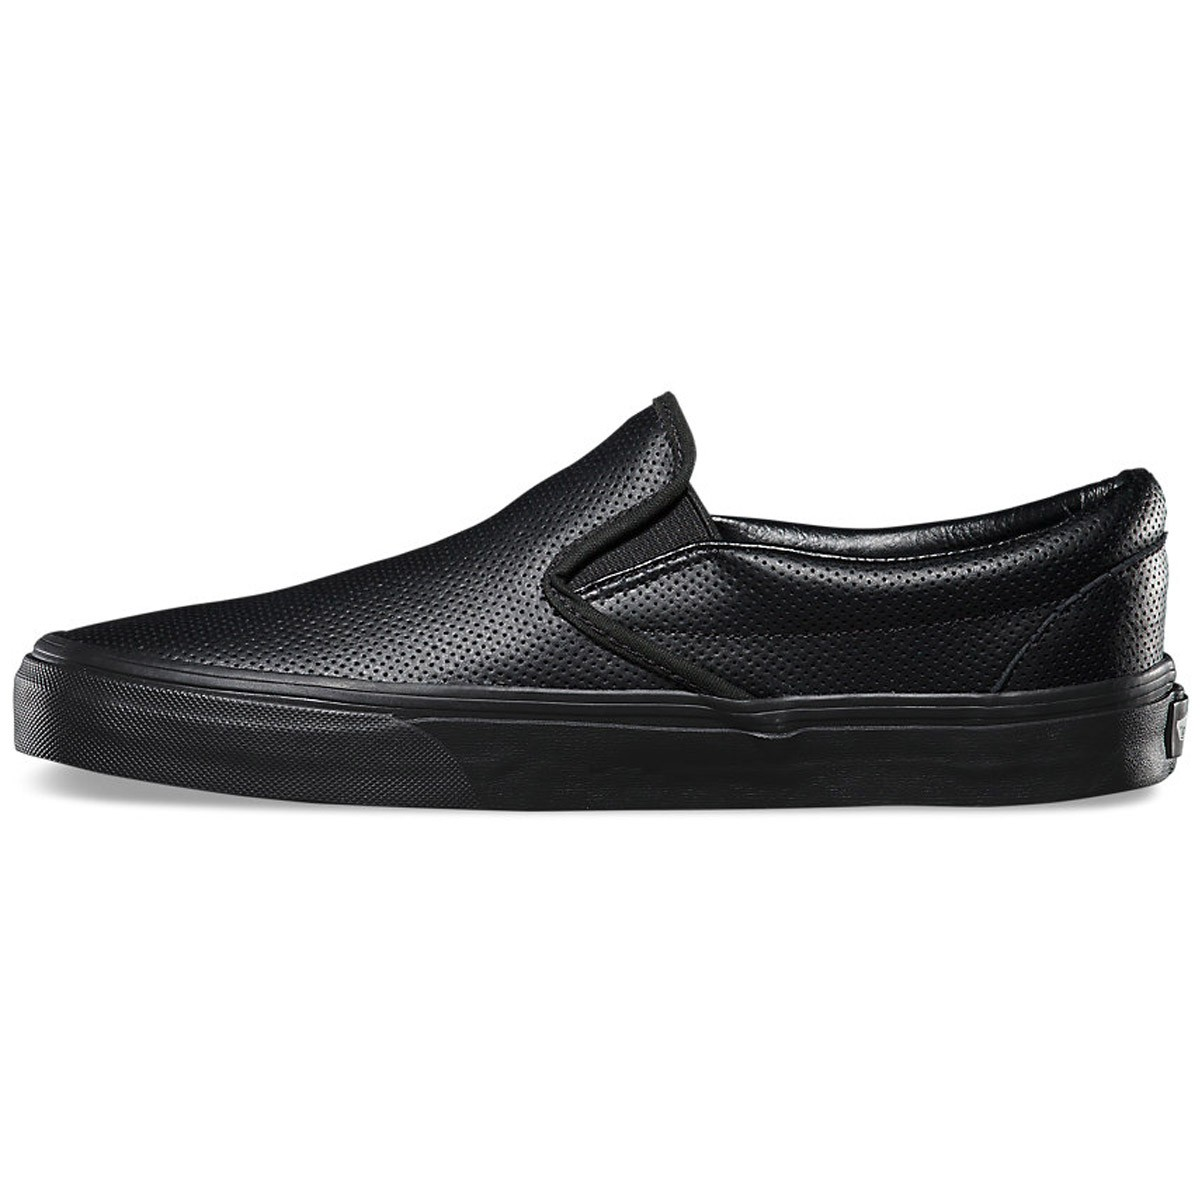 Vans Classic Slip-On Perforated Leather Shoes - Black Black - 3.5 898d86dad